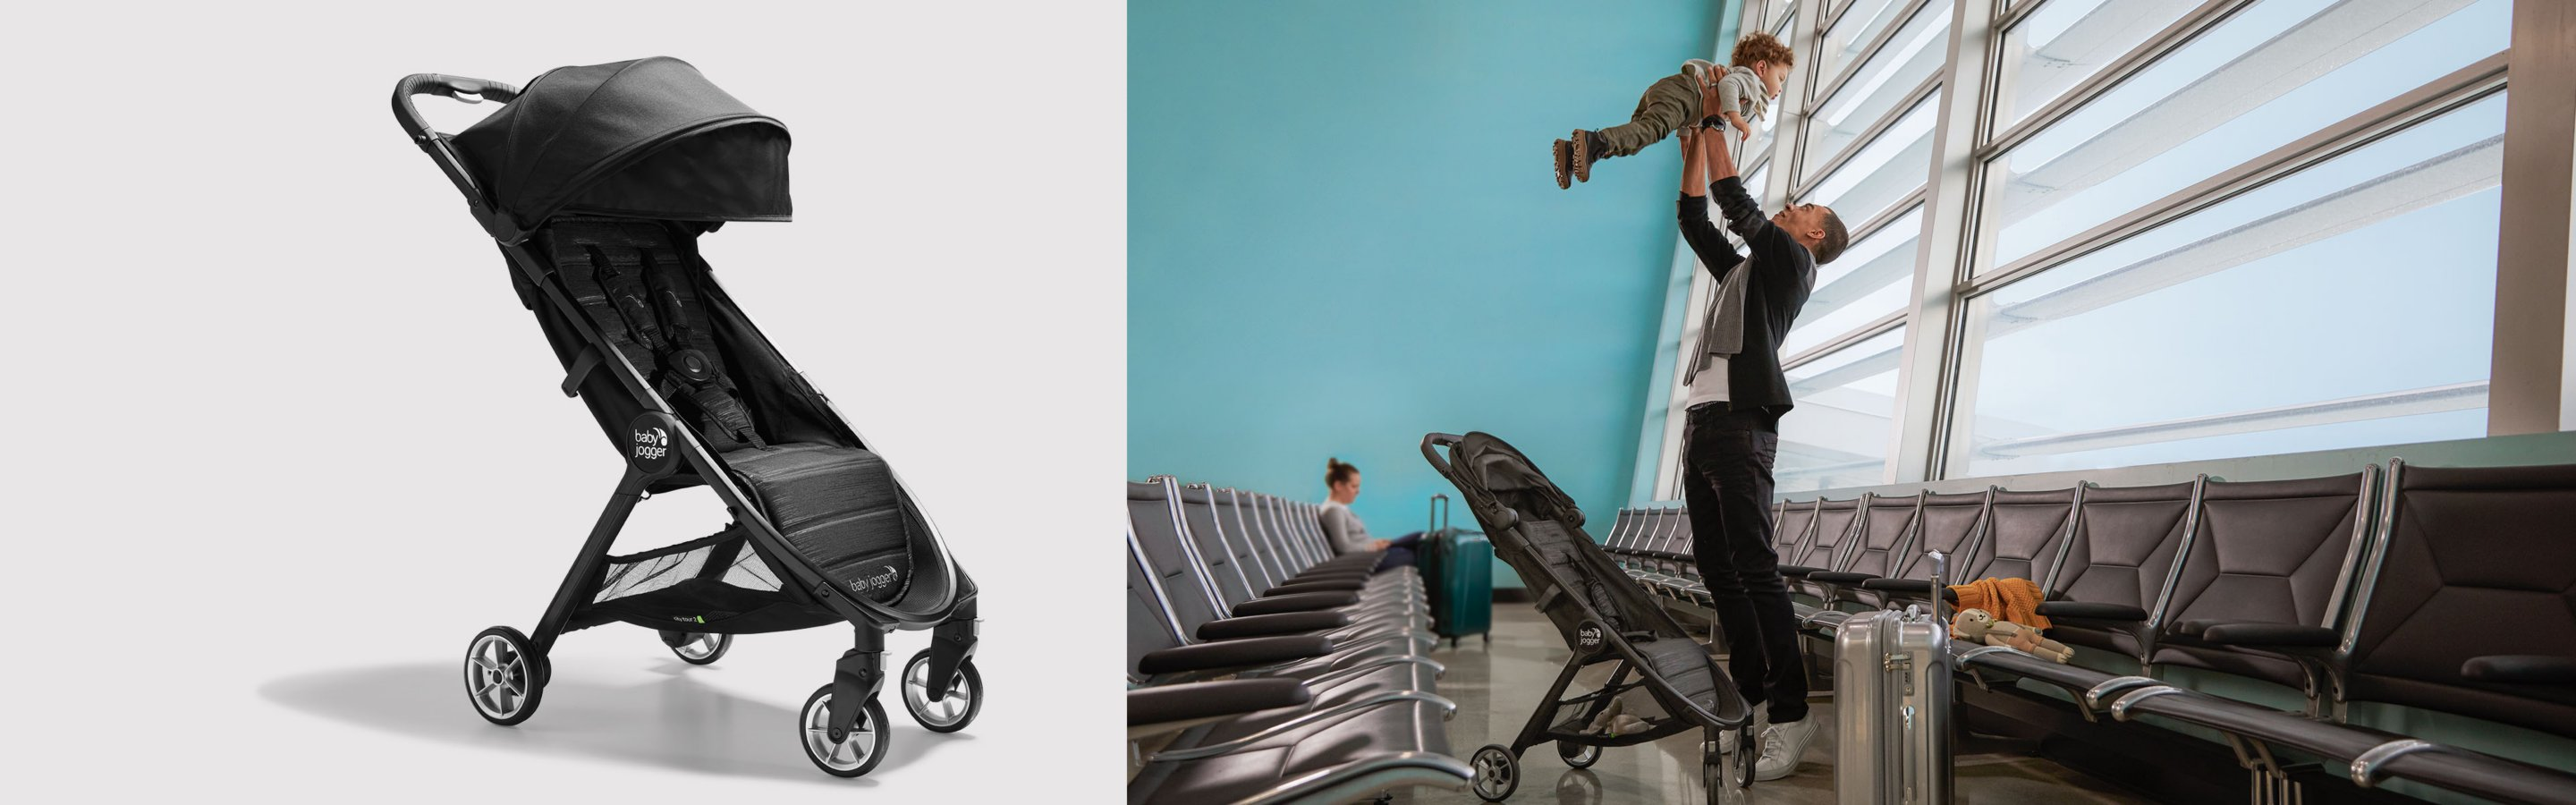 father lifting child out of jogger stroller at airport terminal